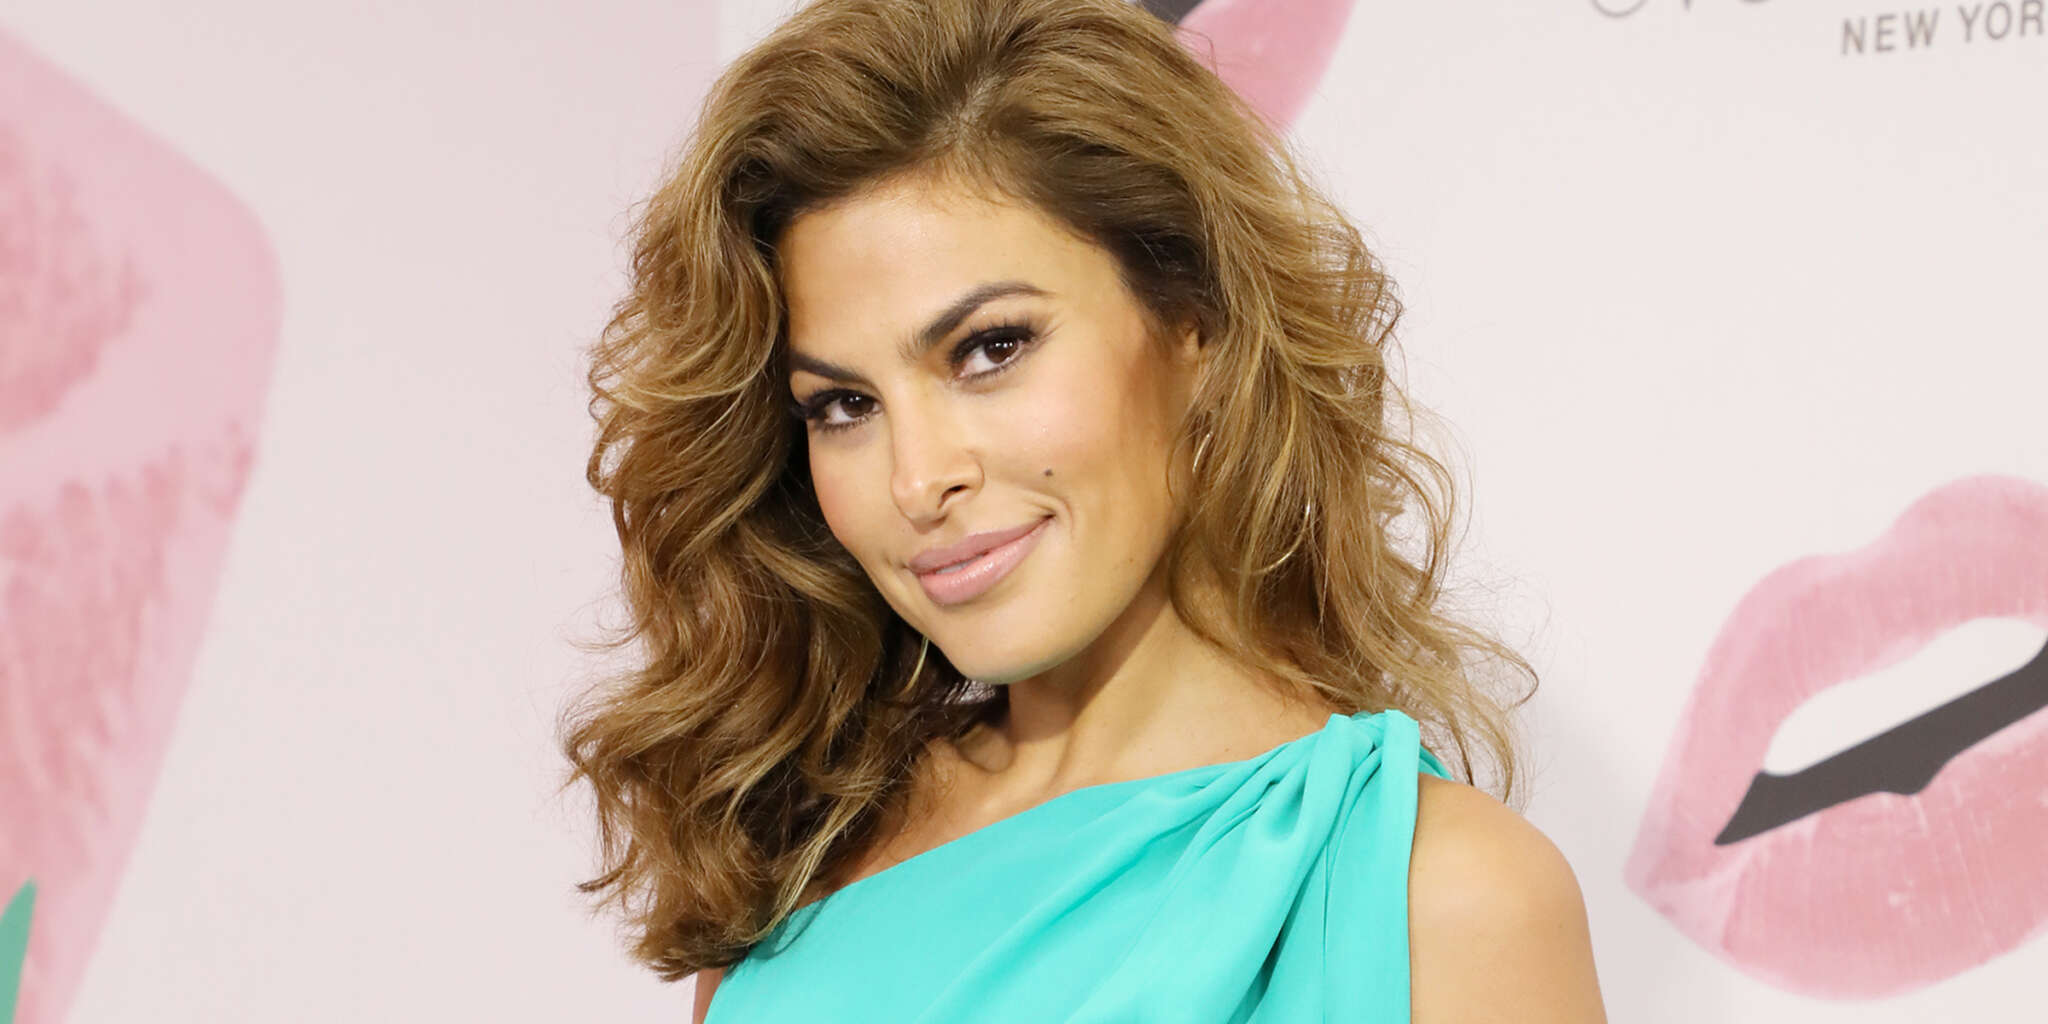 eva-mendes-hater-says-shes-not-posting-on-social-media-because-of-botched-plastic-surgery-check-out-her-response